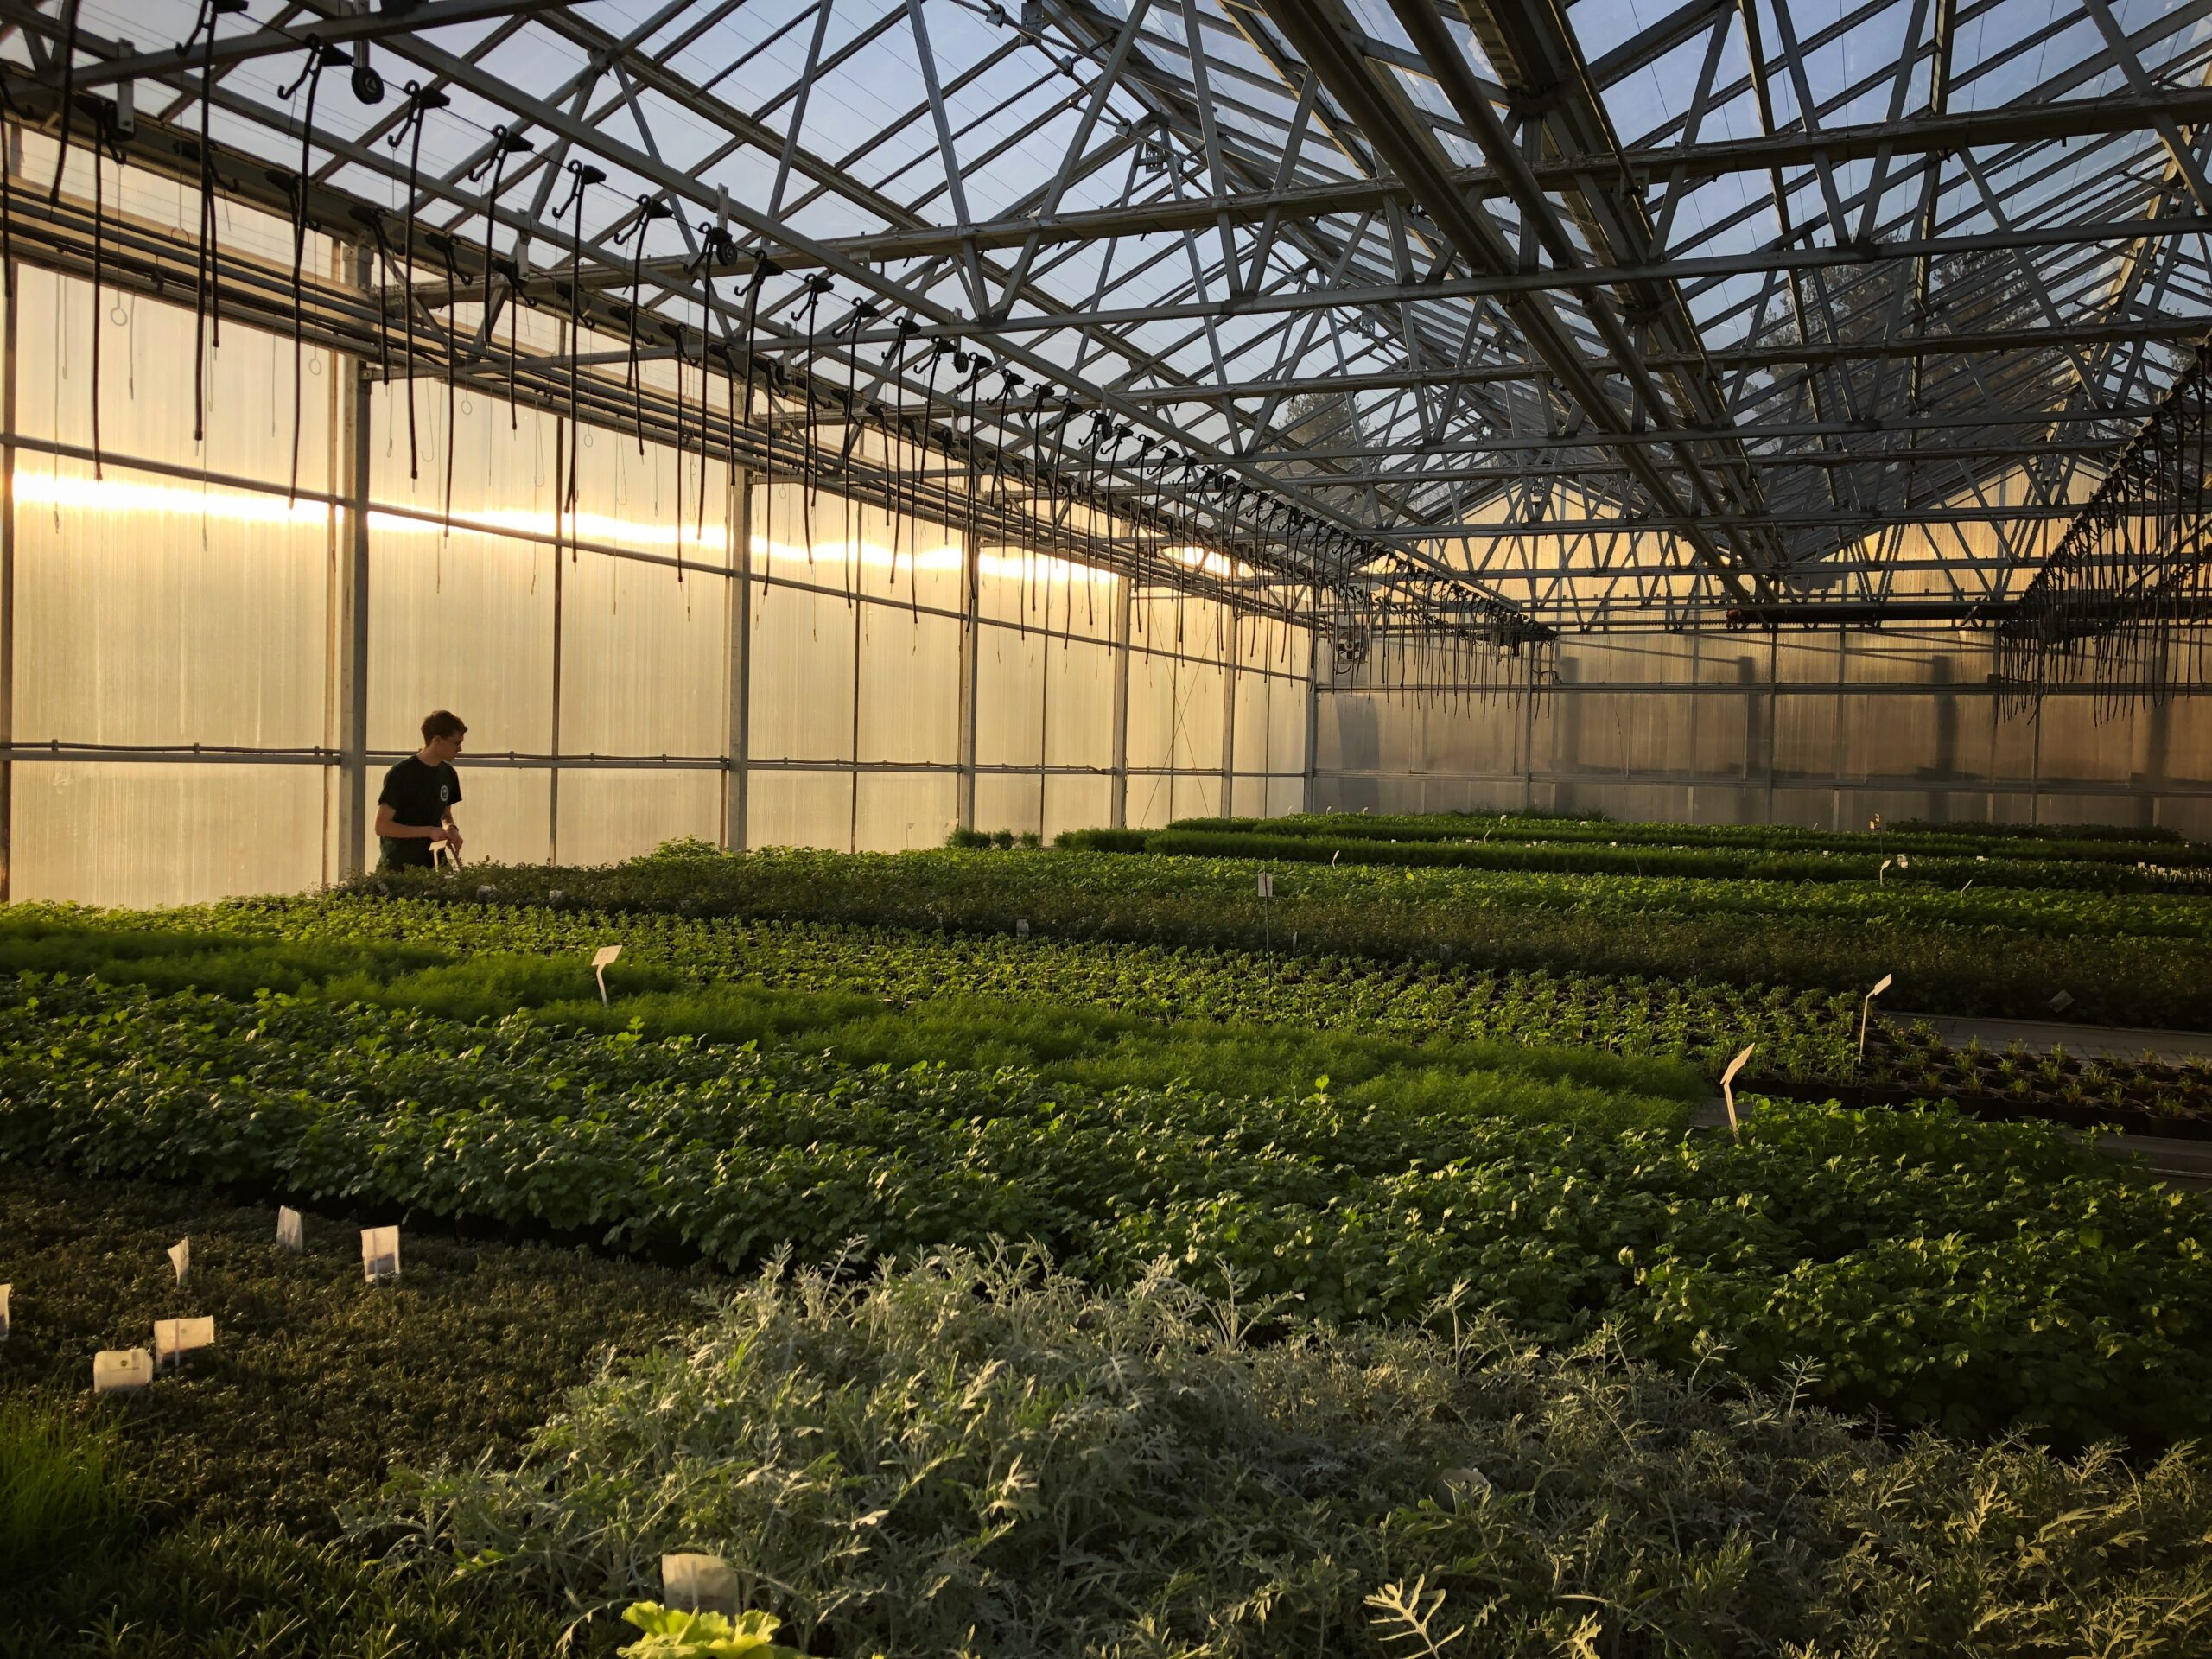 Hiring Greenhouse Office Assistant at Peace Tree Farm in Bucks County, PA